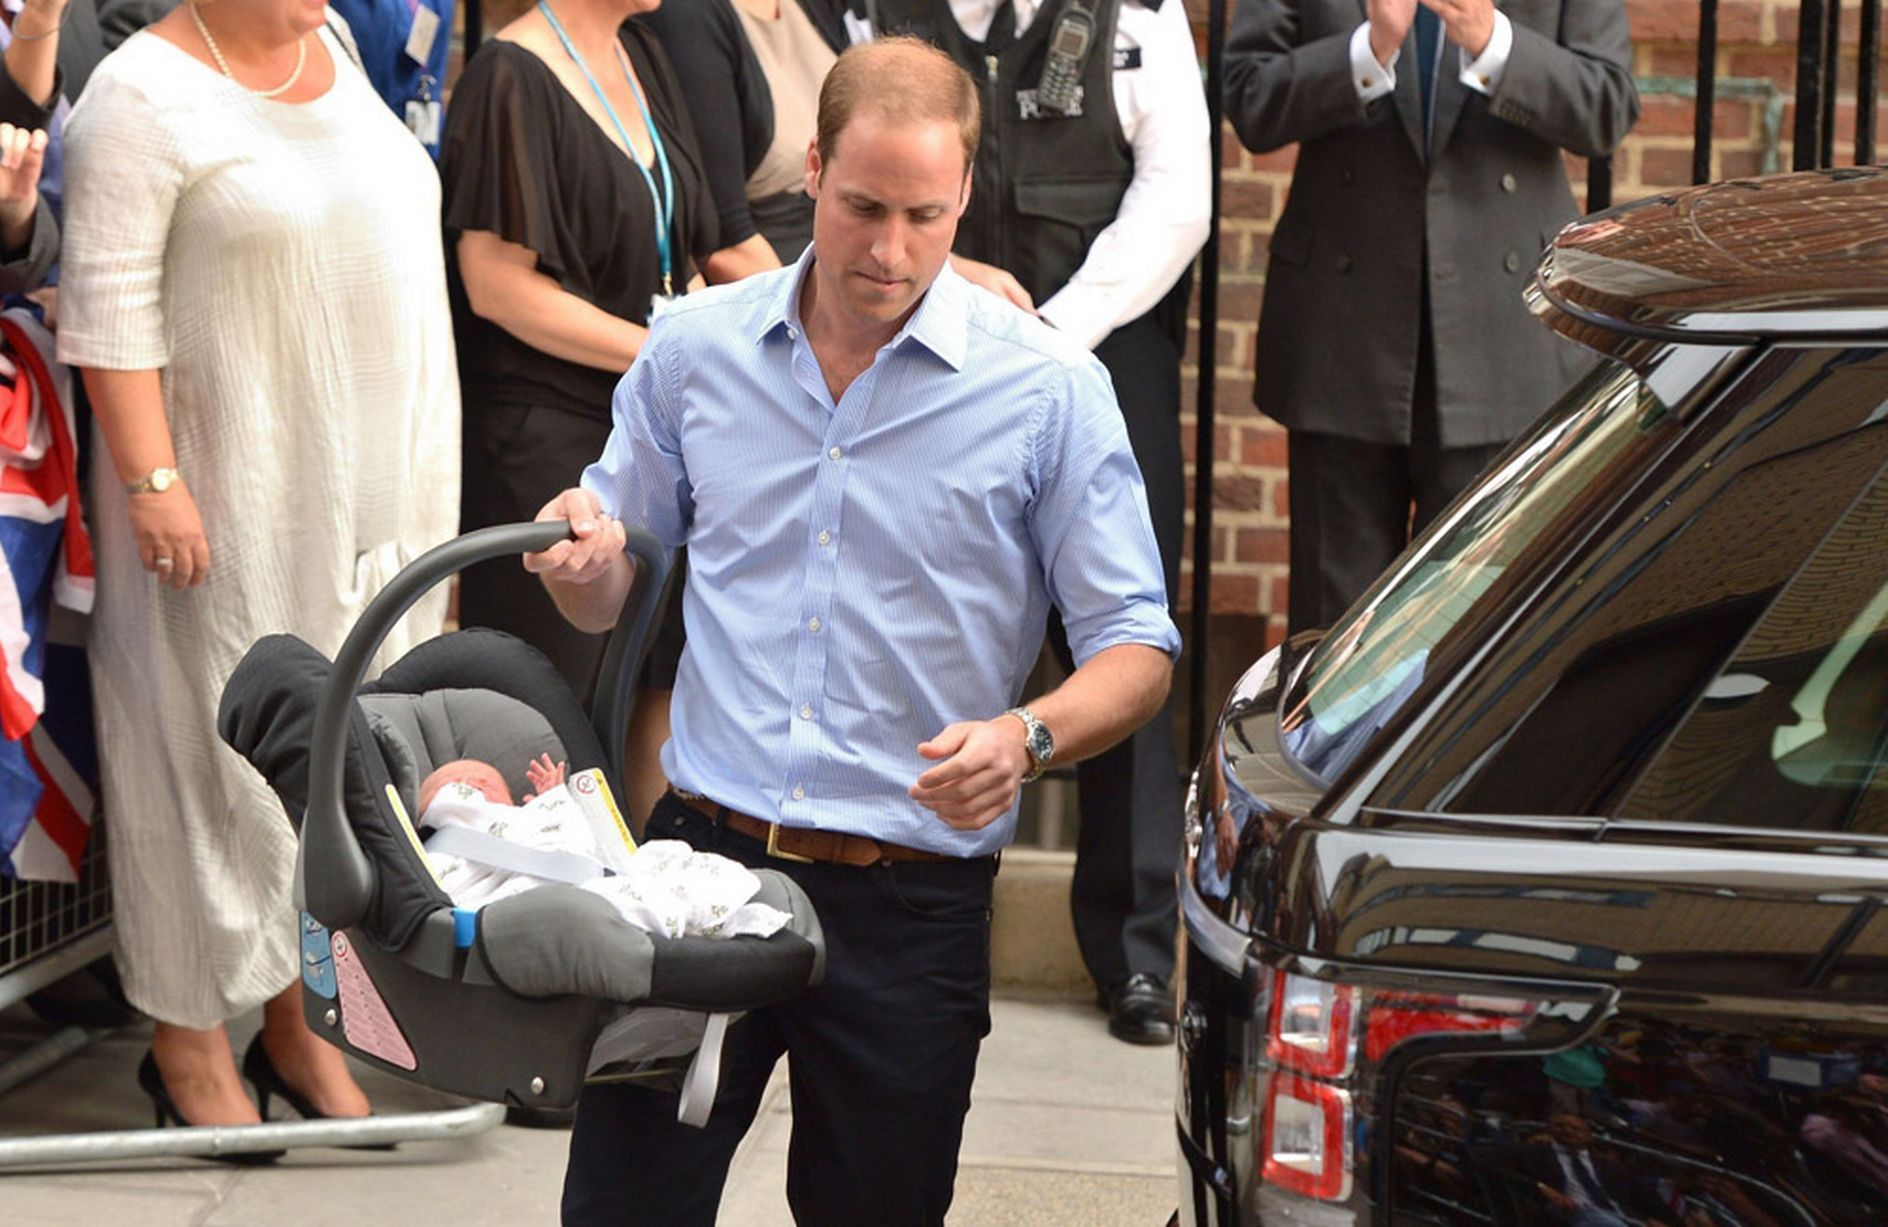 LIVE: Royal baby born - and it's a boy for Kate Middleton and Prince William - Mirror Online